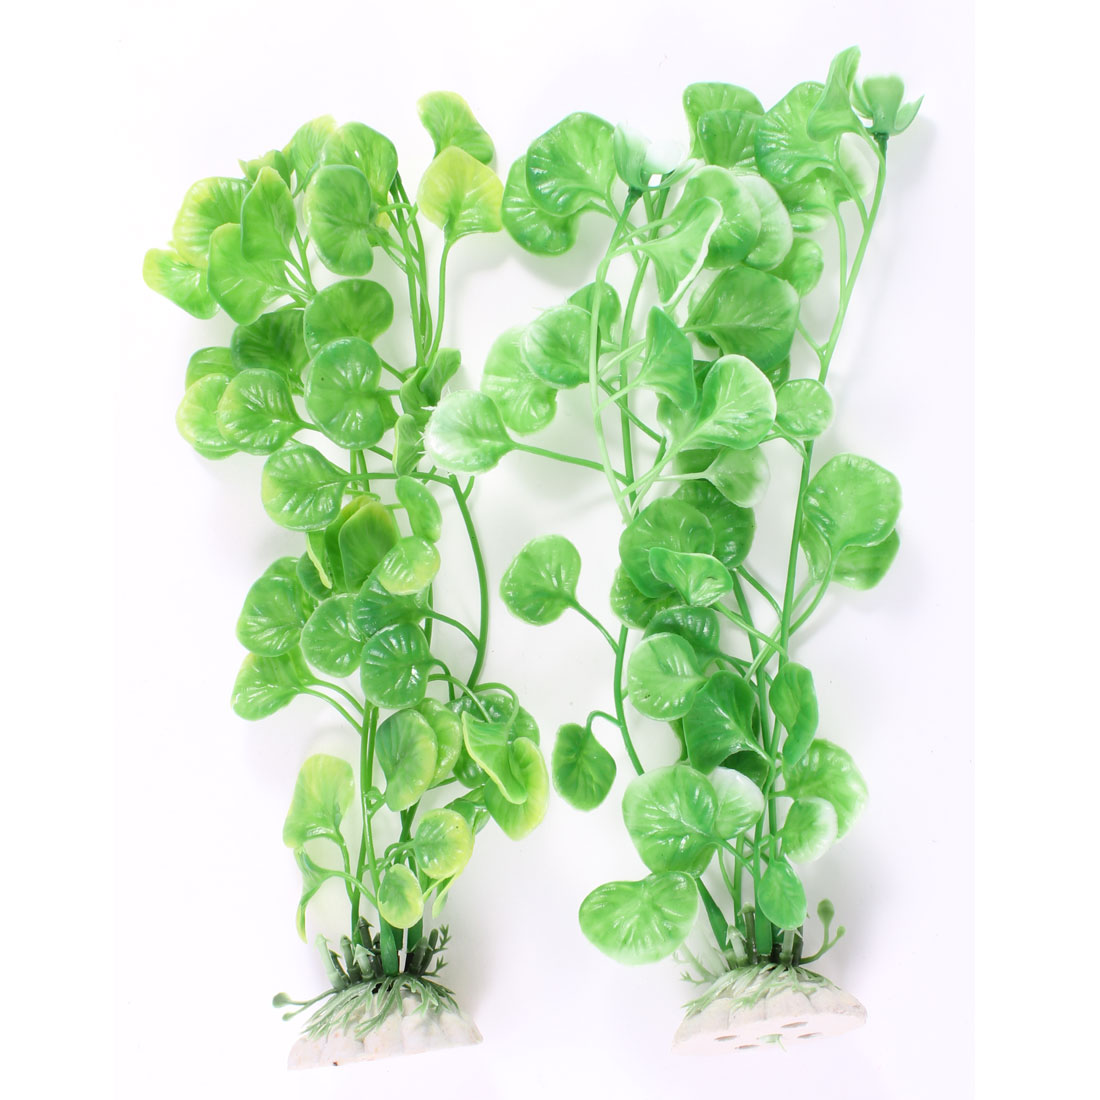 "2 Pcs Green Yellow Emulational Water Plants Ornament 8.7"" High for Fish Tank"